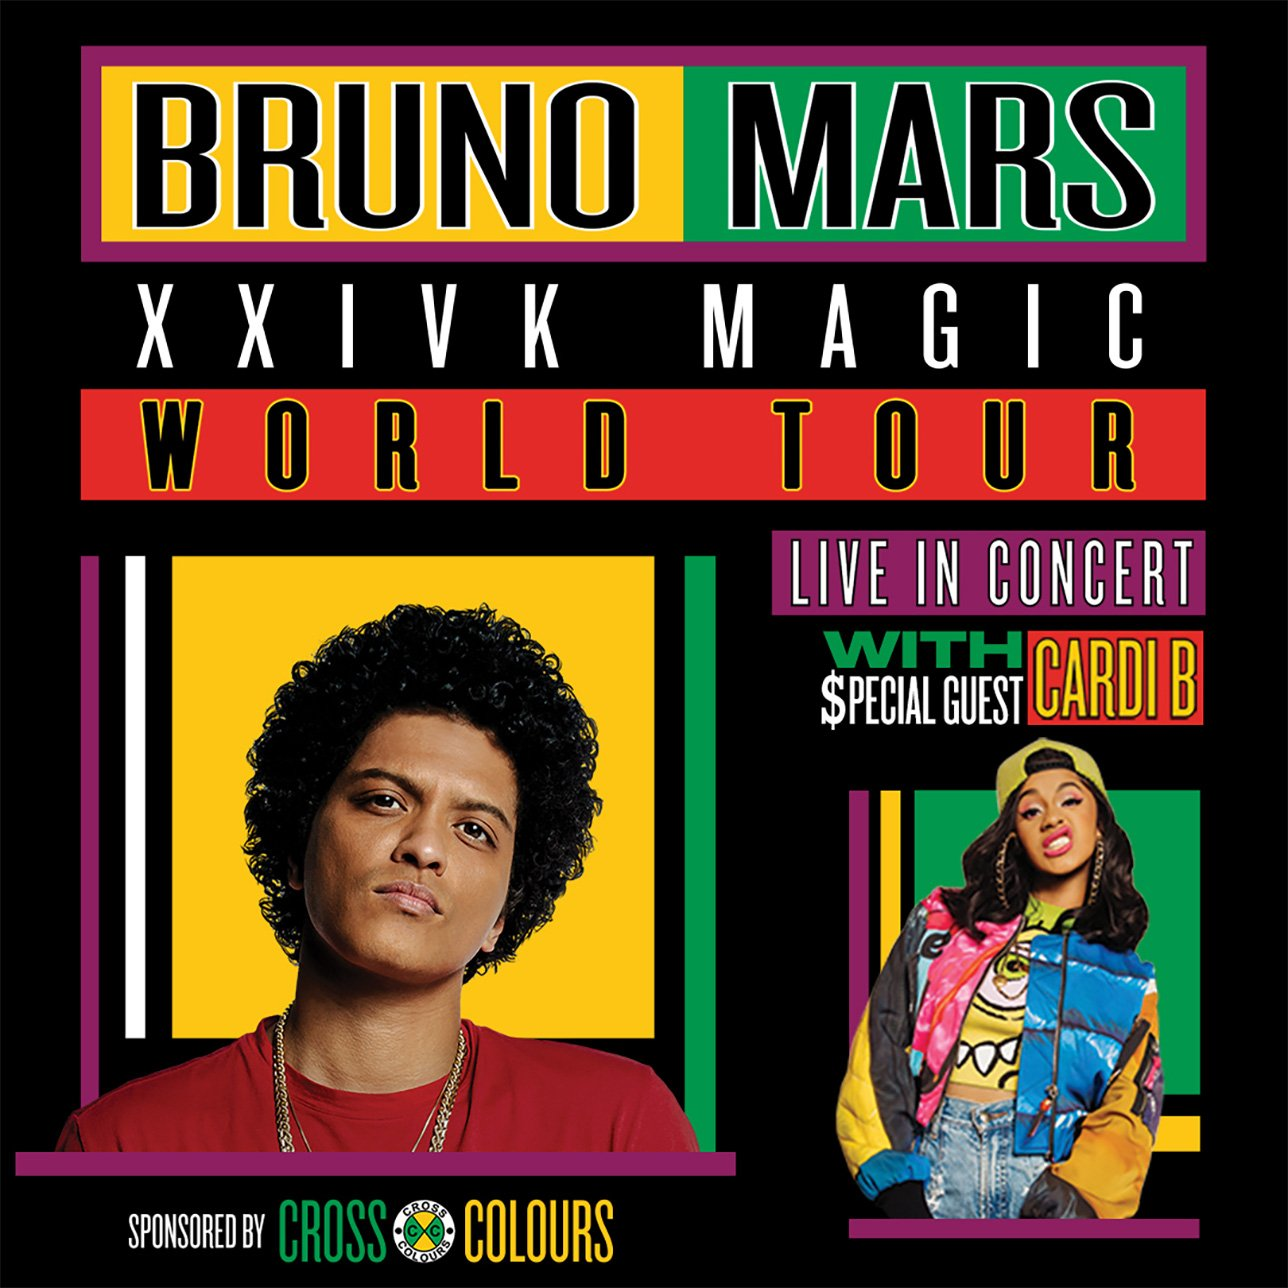 Bruno Mars with special guest Cardi B